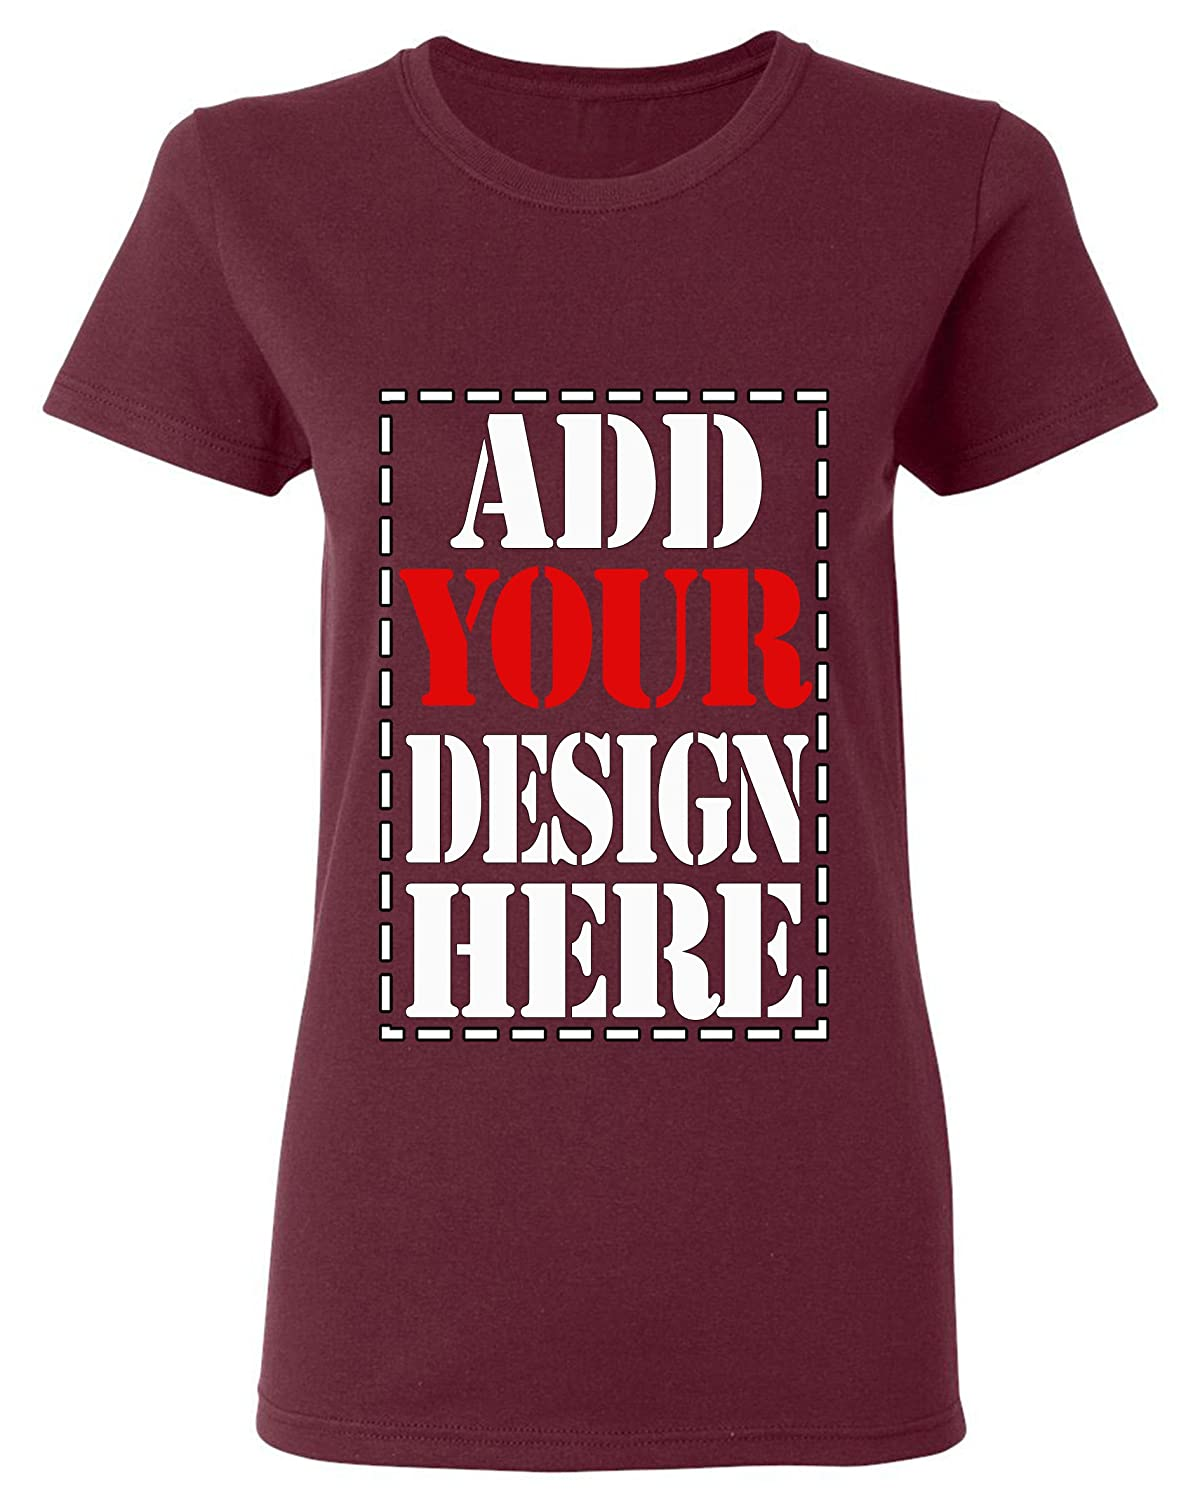 d1bce739bc Amazon.com: Design Your OWN Shirt Customized T-Shirt - Add Your Picture  Photo Text Print - Women Tee (Slim Fit): Clothing